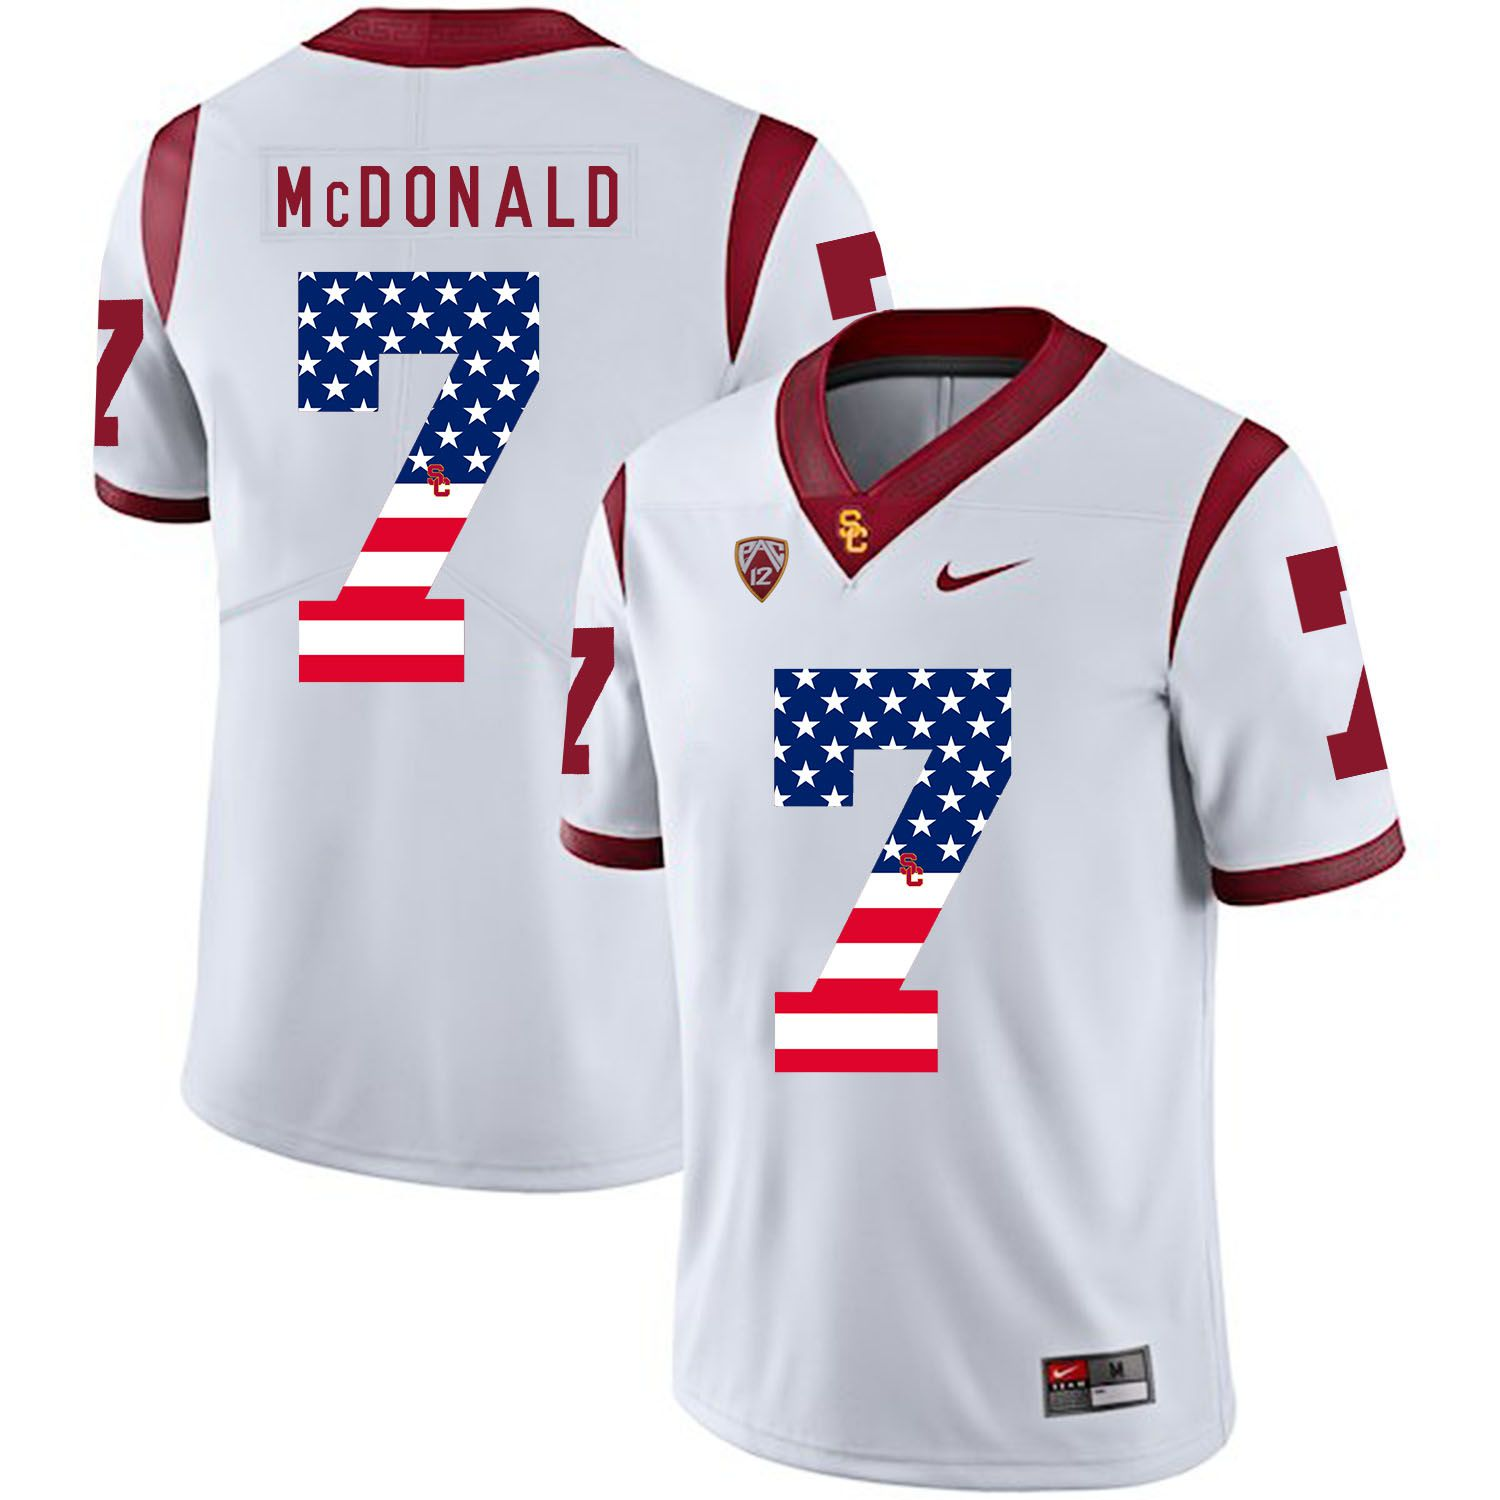 Men USC Trojans 7 Mcdonald White Flag Customized NCAA Jerseys